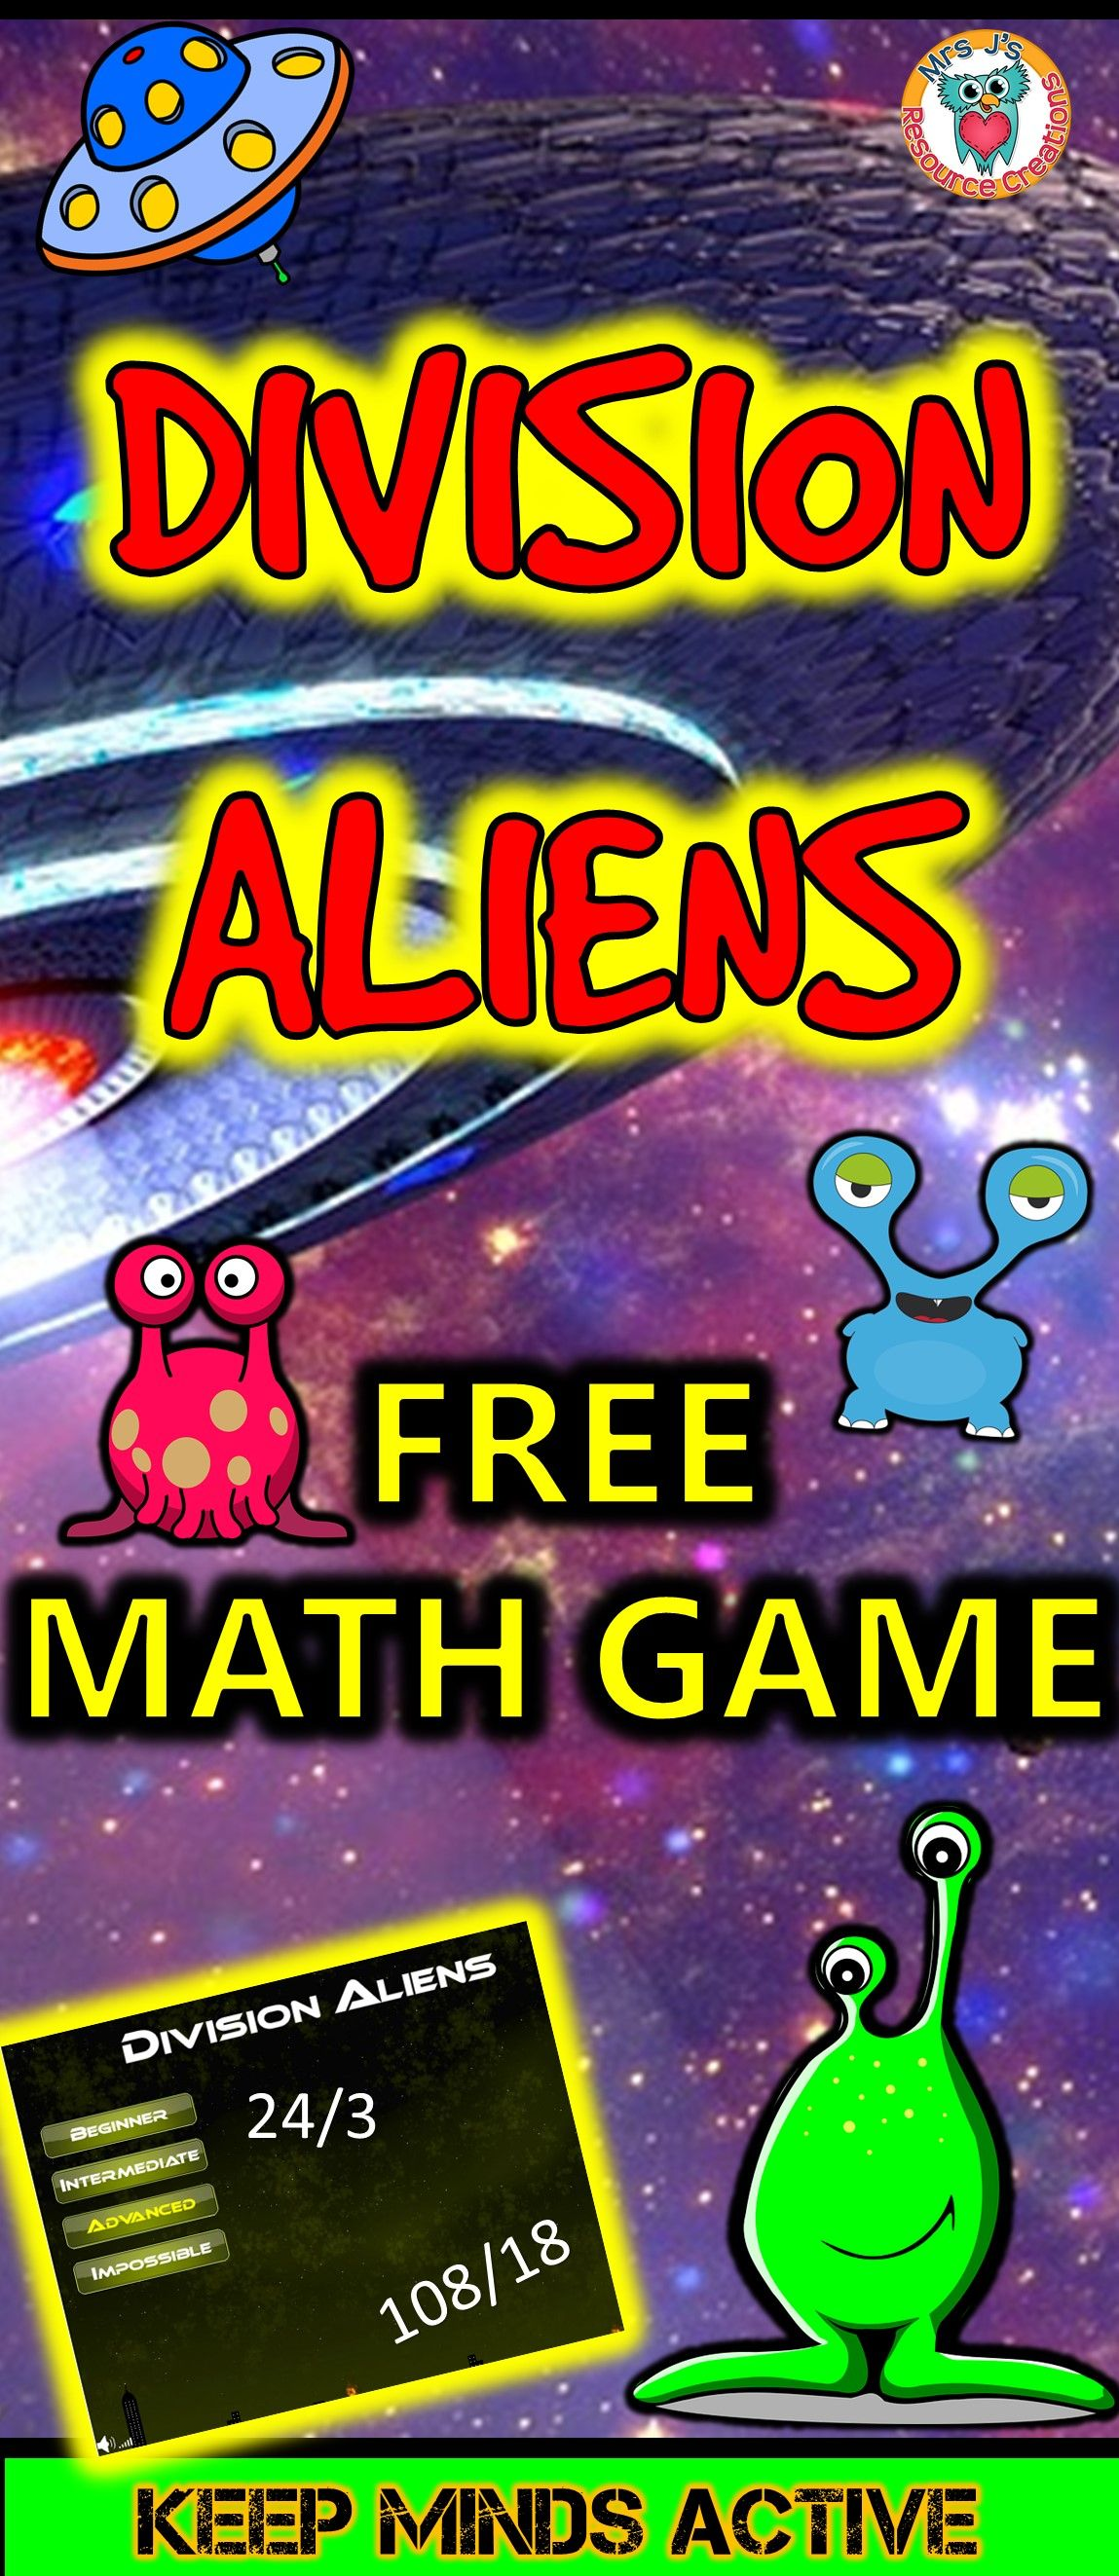 Division Aliens - Fun Free math game to play online! | Division ...